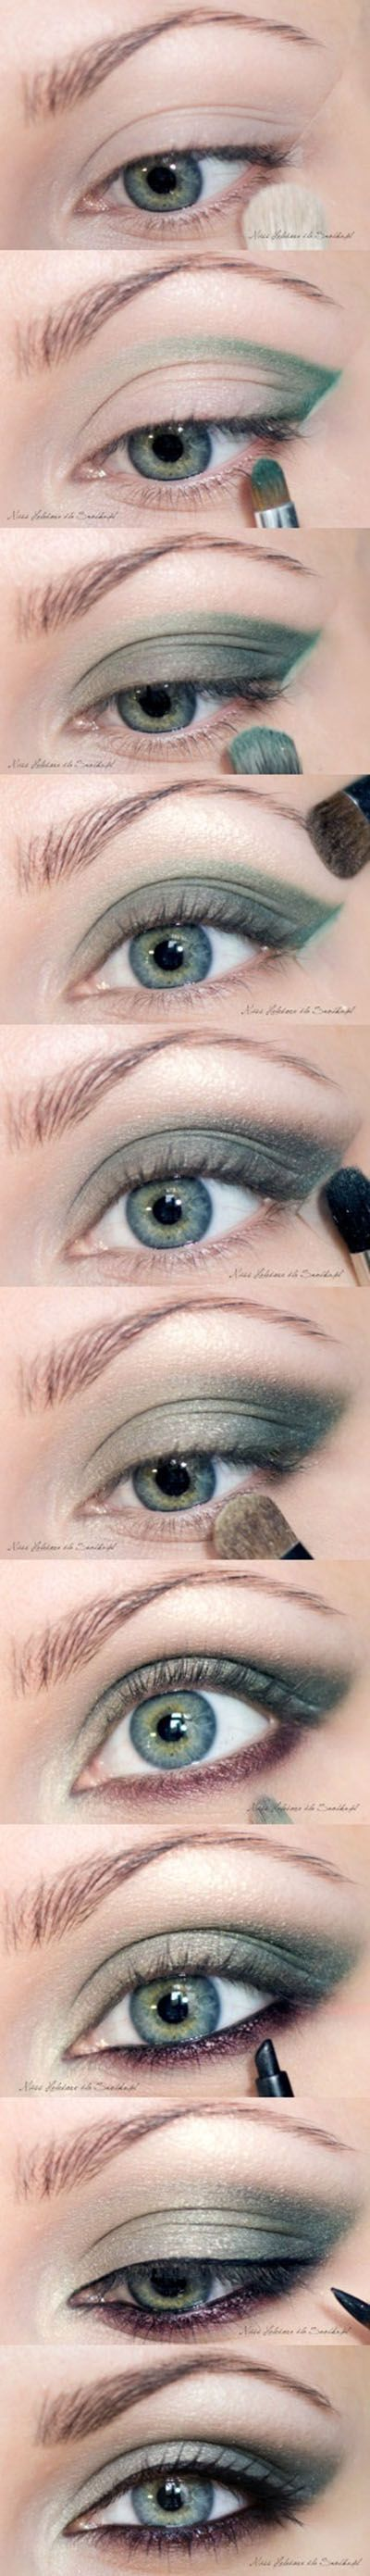 26 Easy Makeup Tutorials for Blue Eyes - Page 24 of 24